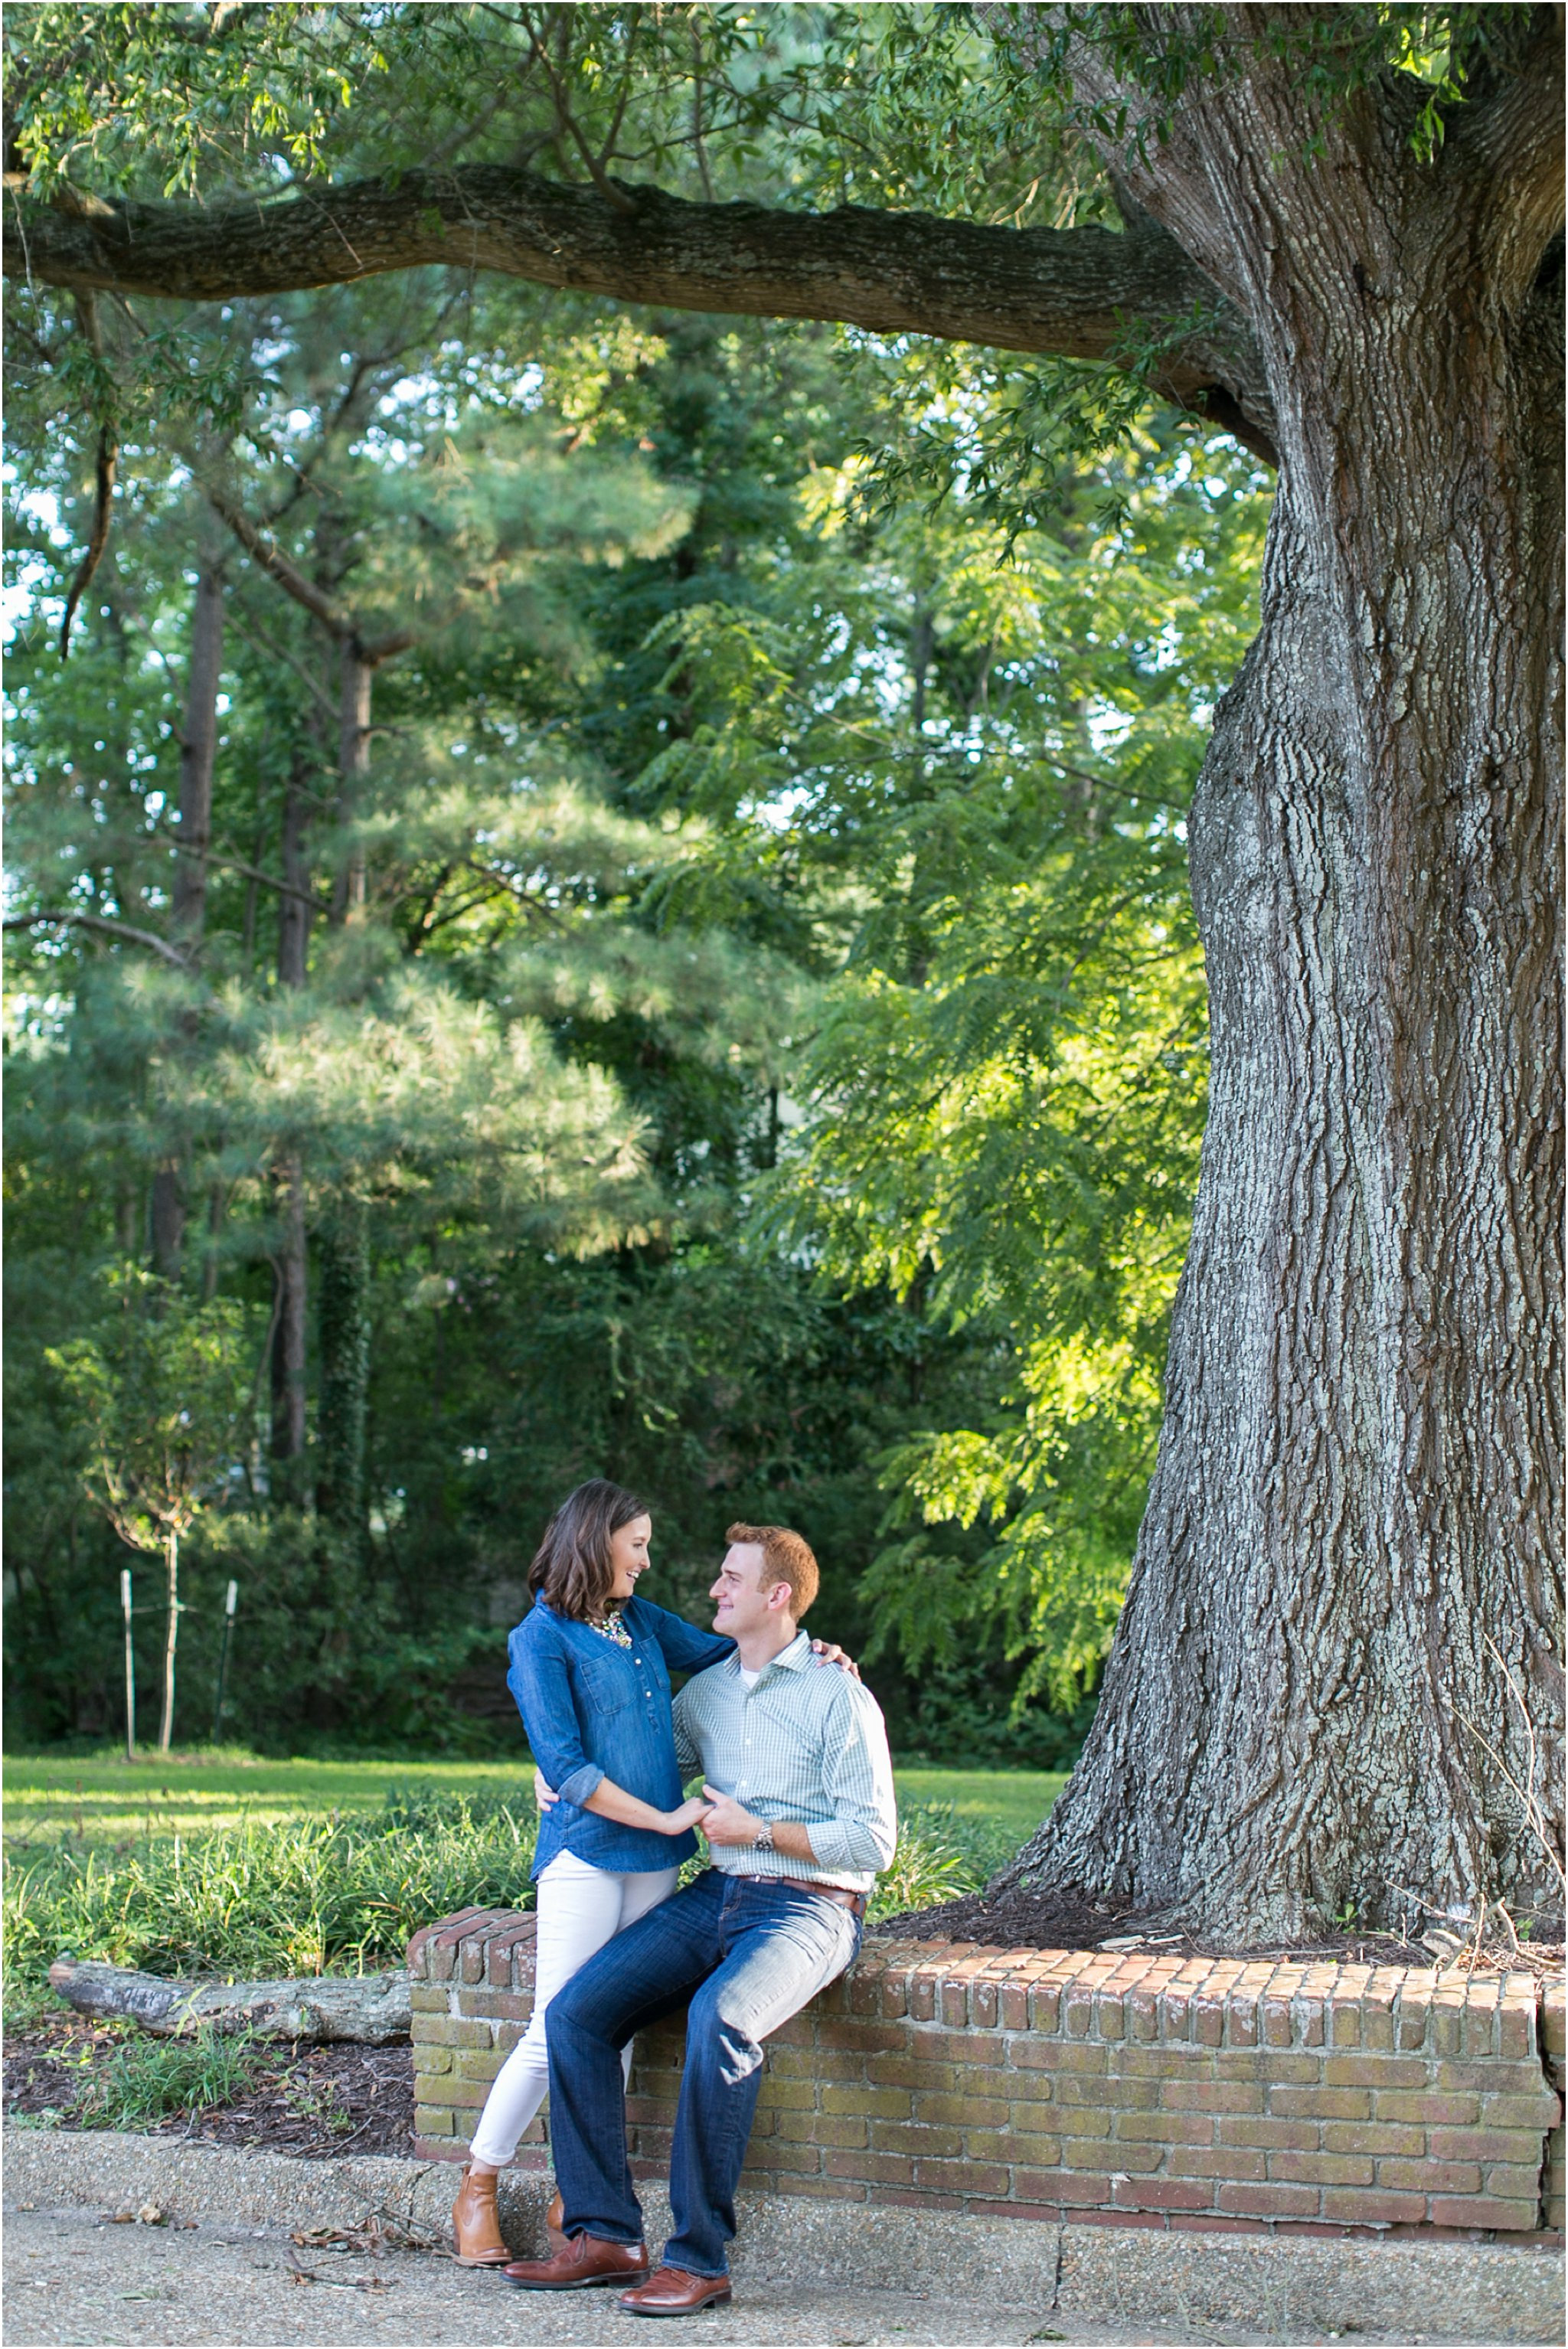 jessica_ryan_photography_virginia_virginia_beach_francis_land_house__portraits_bride_and_groom_beloved_historical_home_engagement_portraits_candid_authentic_engagements_2727